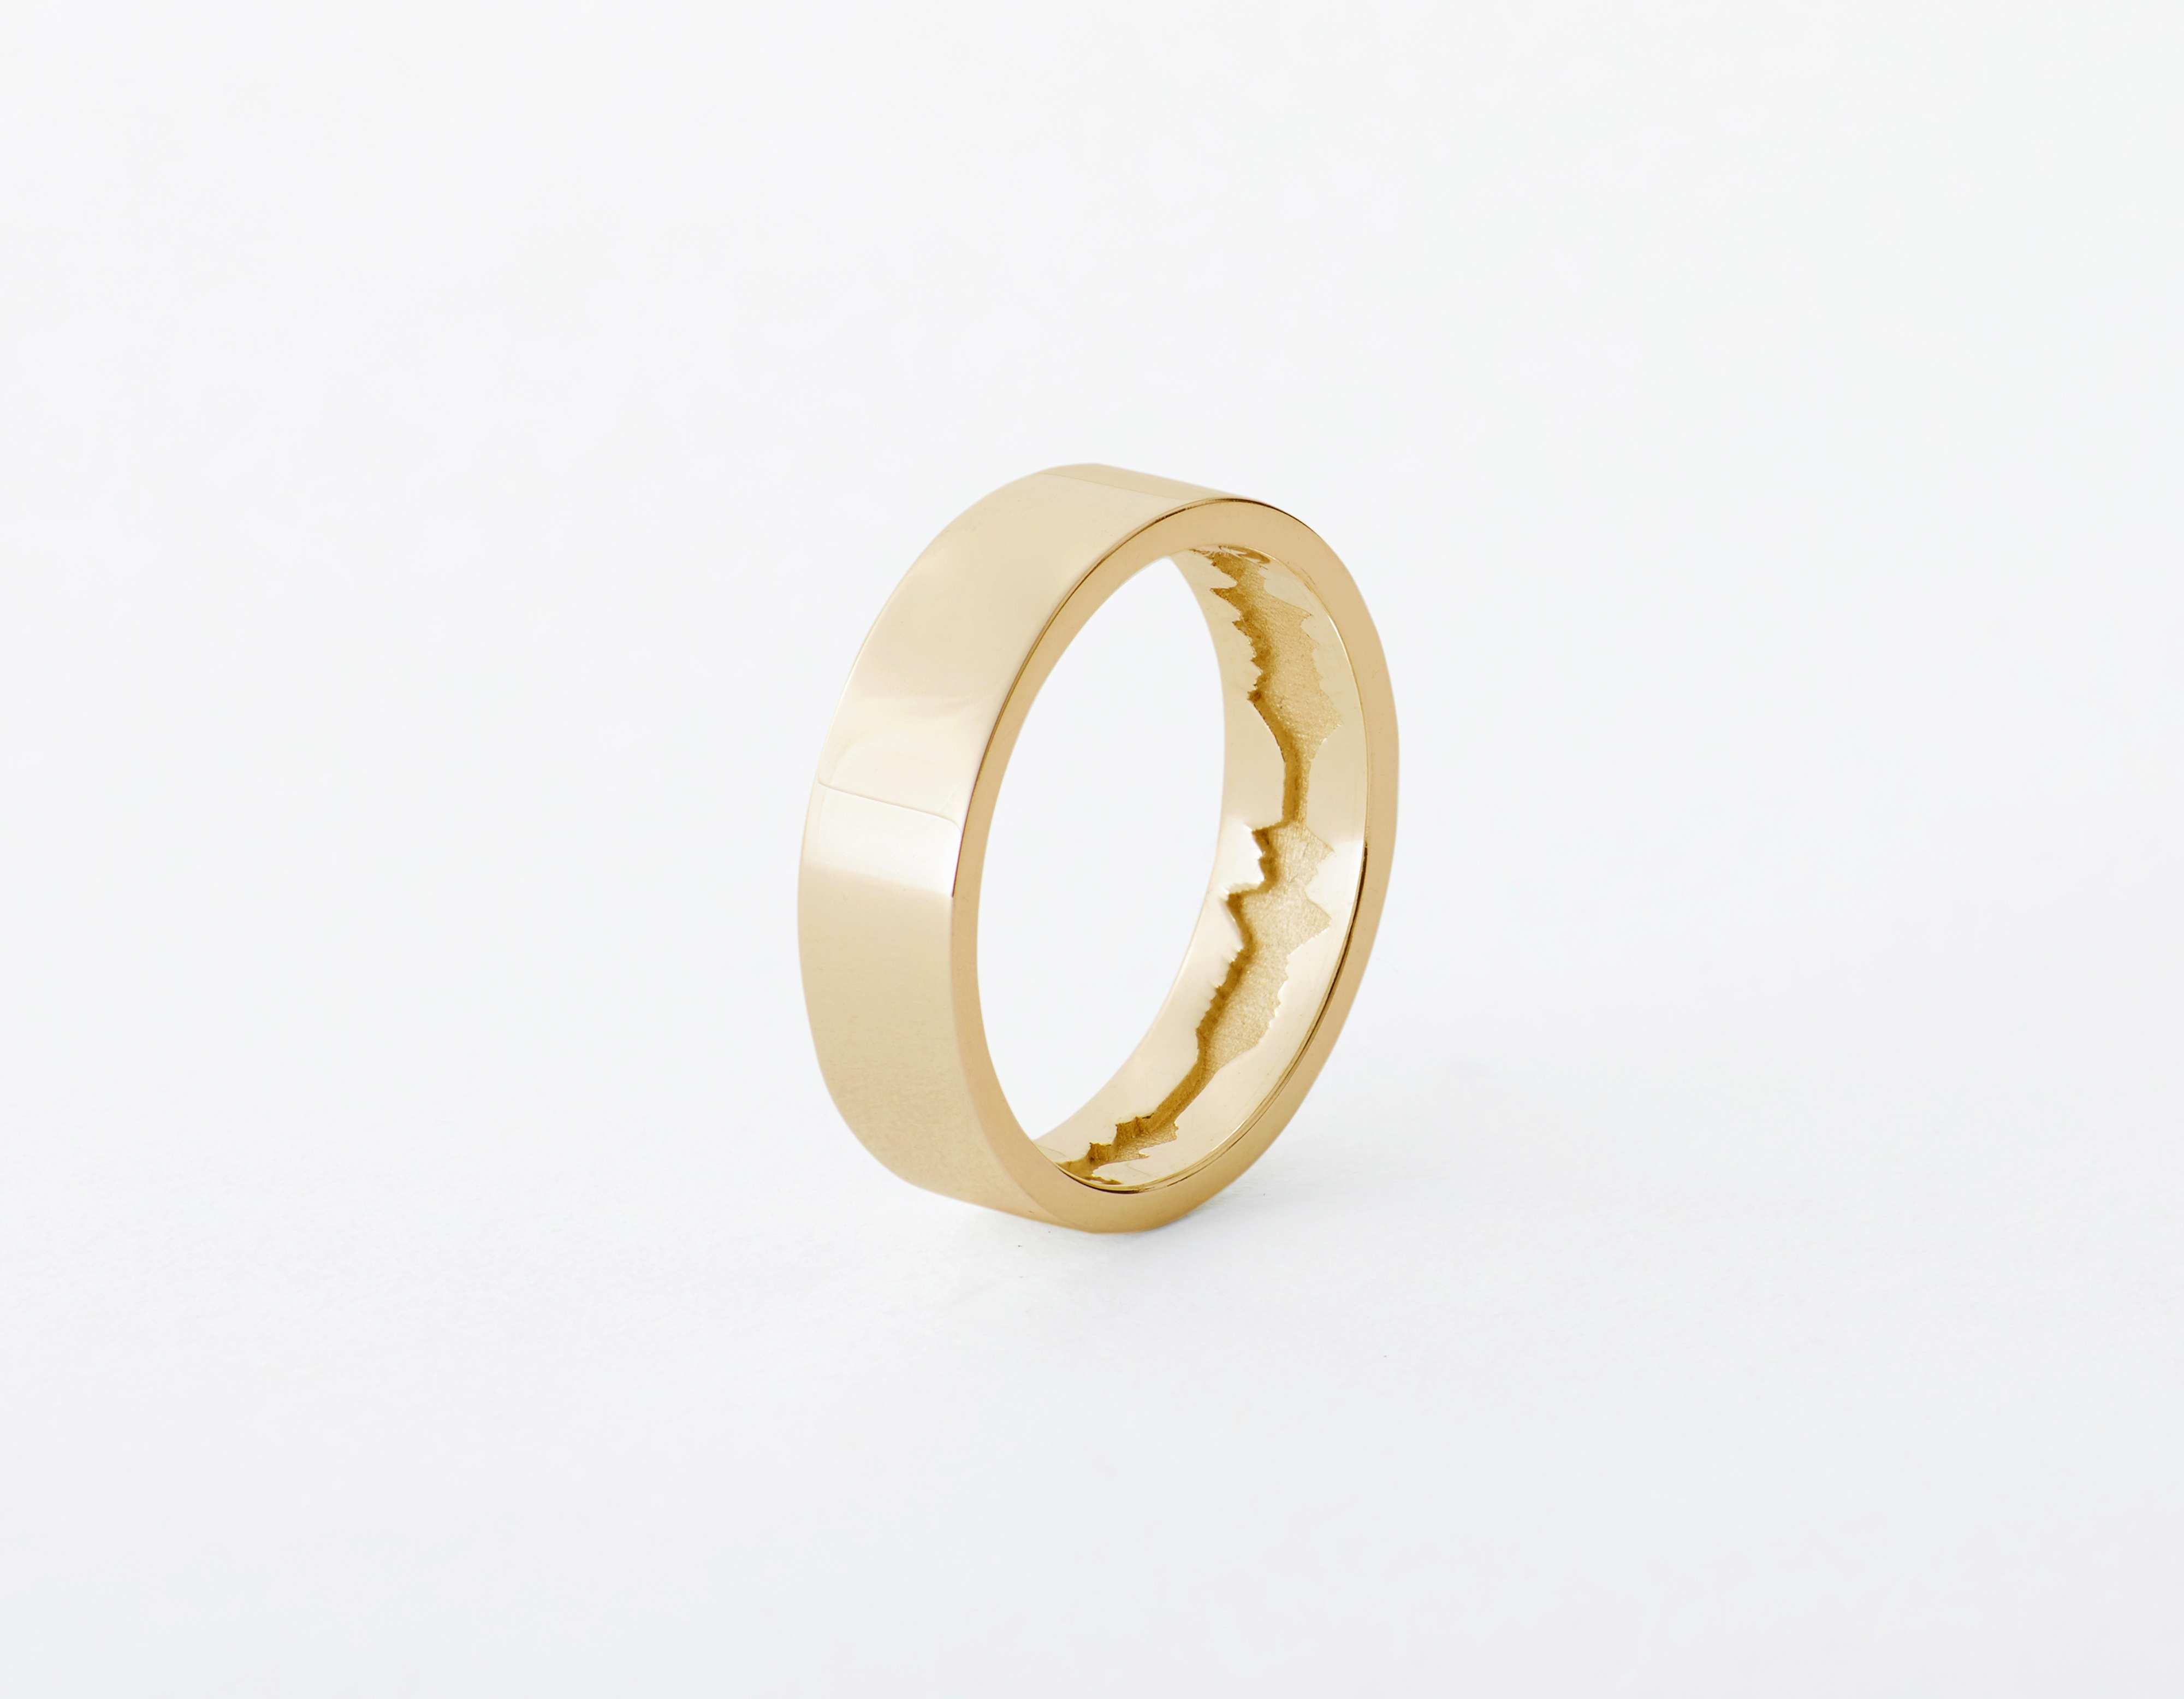 The Inner Wave Ring placed vertical in 14-Karat Gold thumbnail